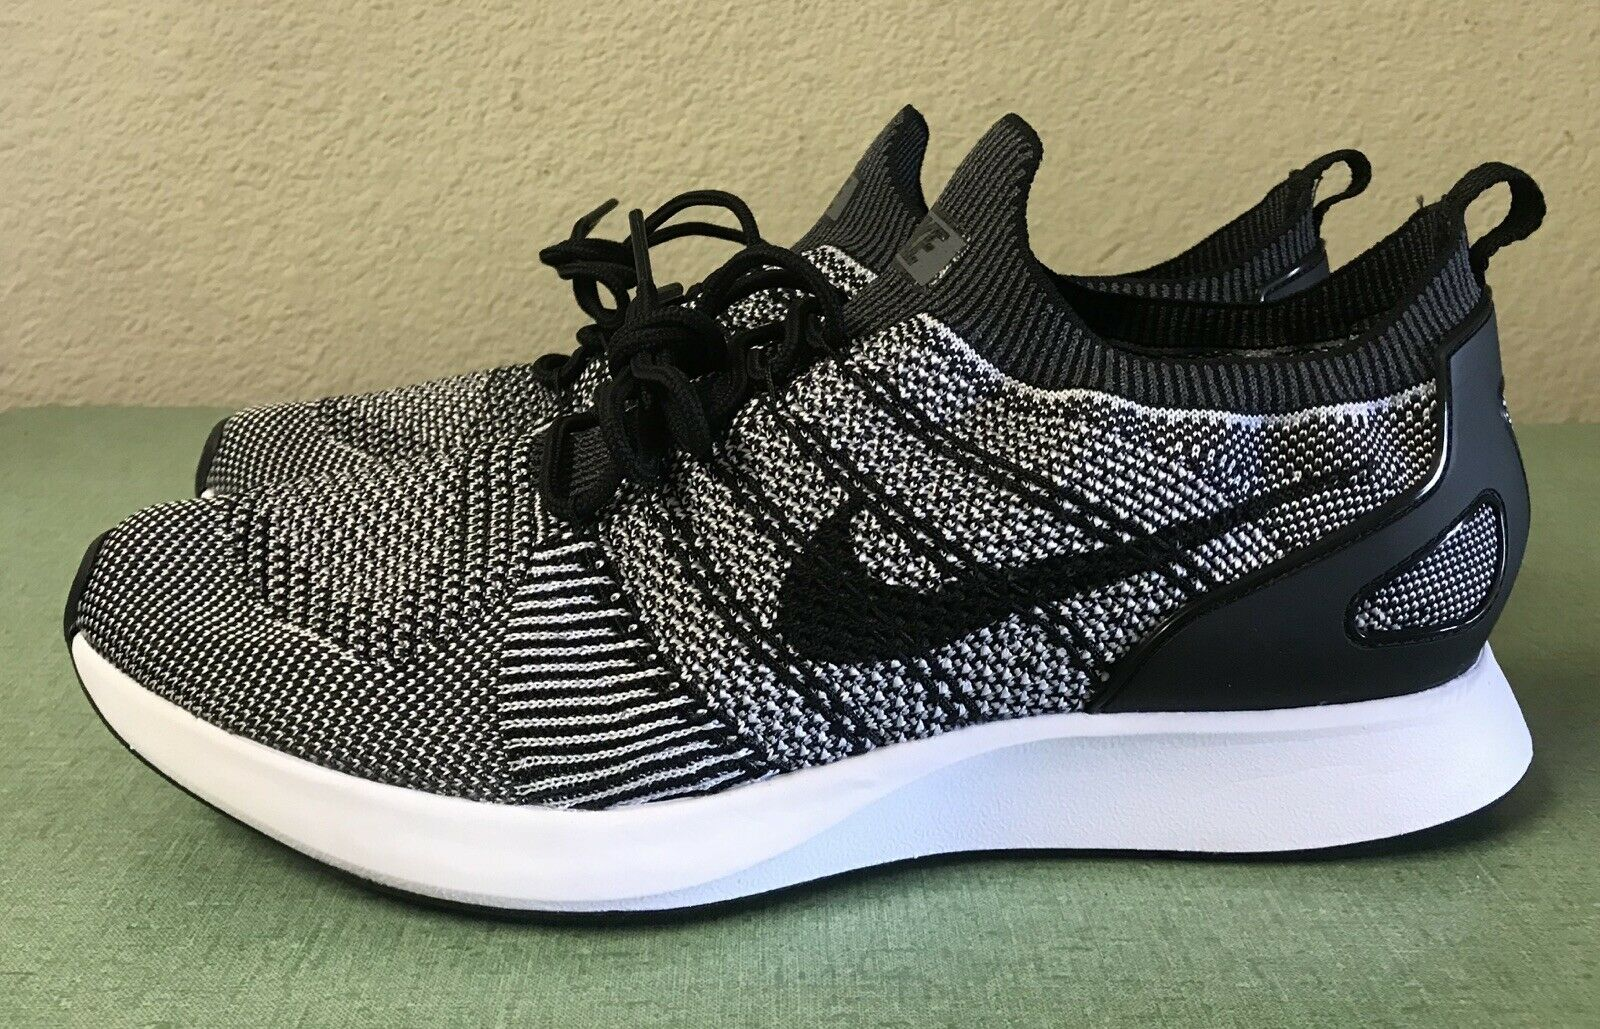 Nike Air Zoom Mariah Flyknit Racer Oreo Black White Mens Sz 11 Running shoes NEW